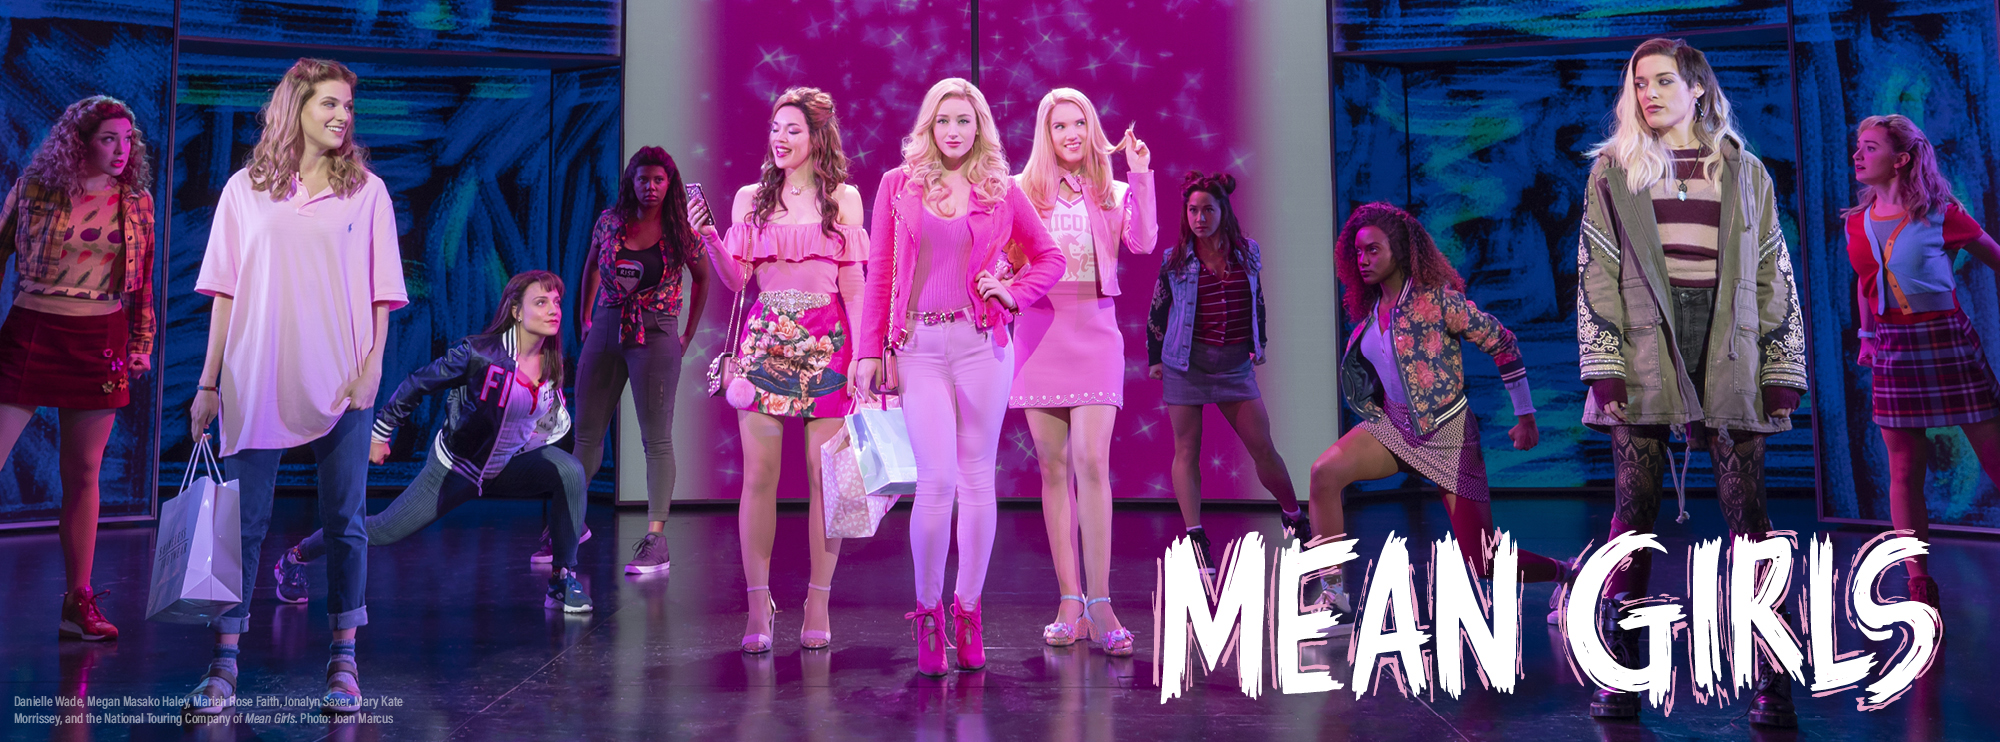 Mean Girls Official Ticketing Site of BroadwaySF